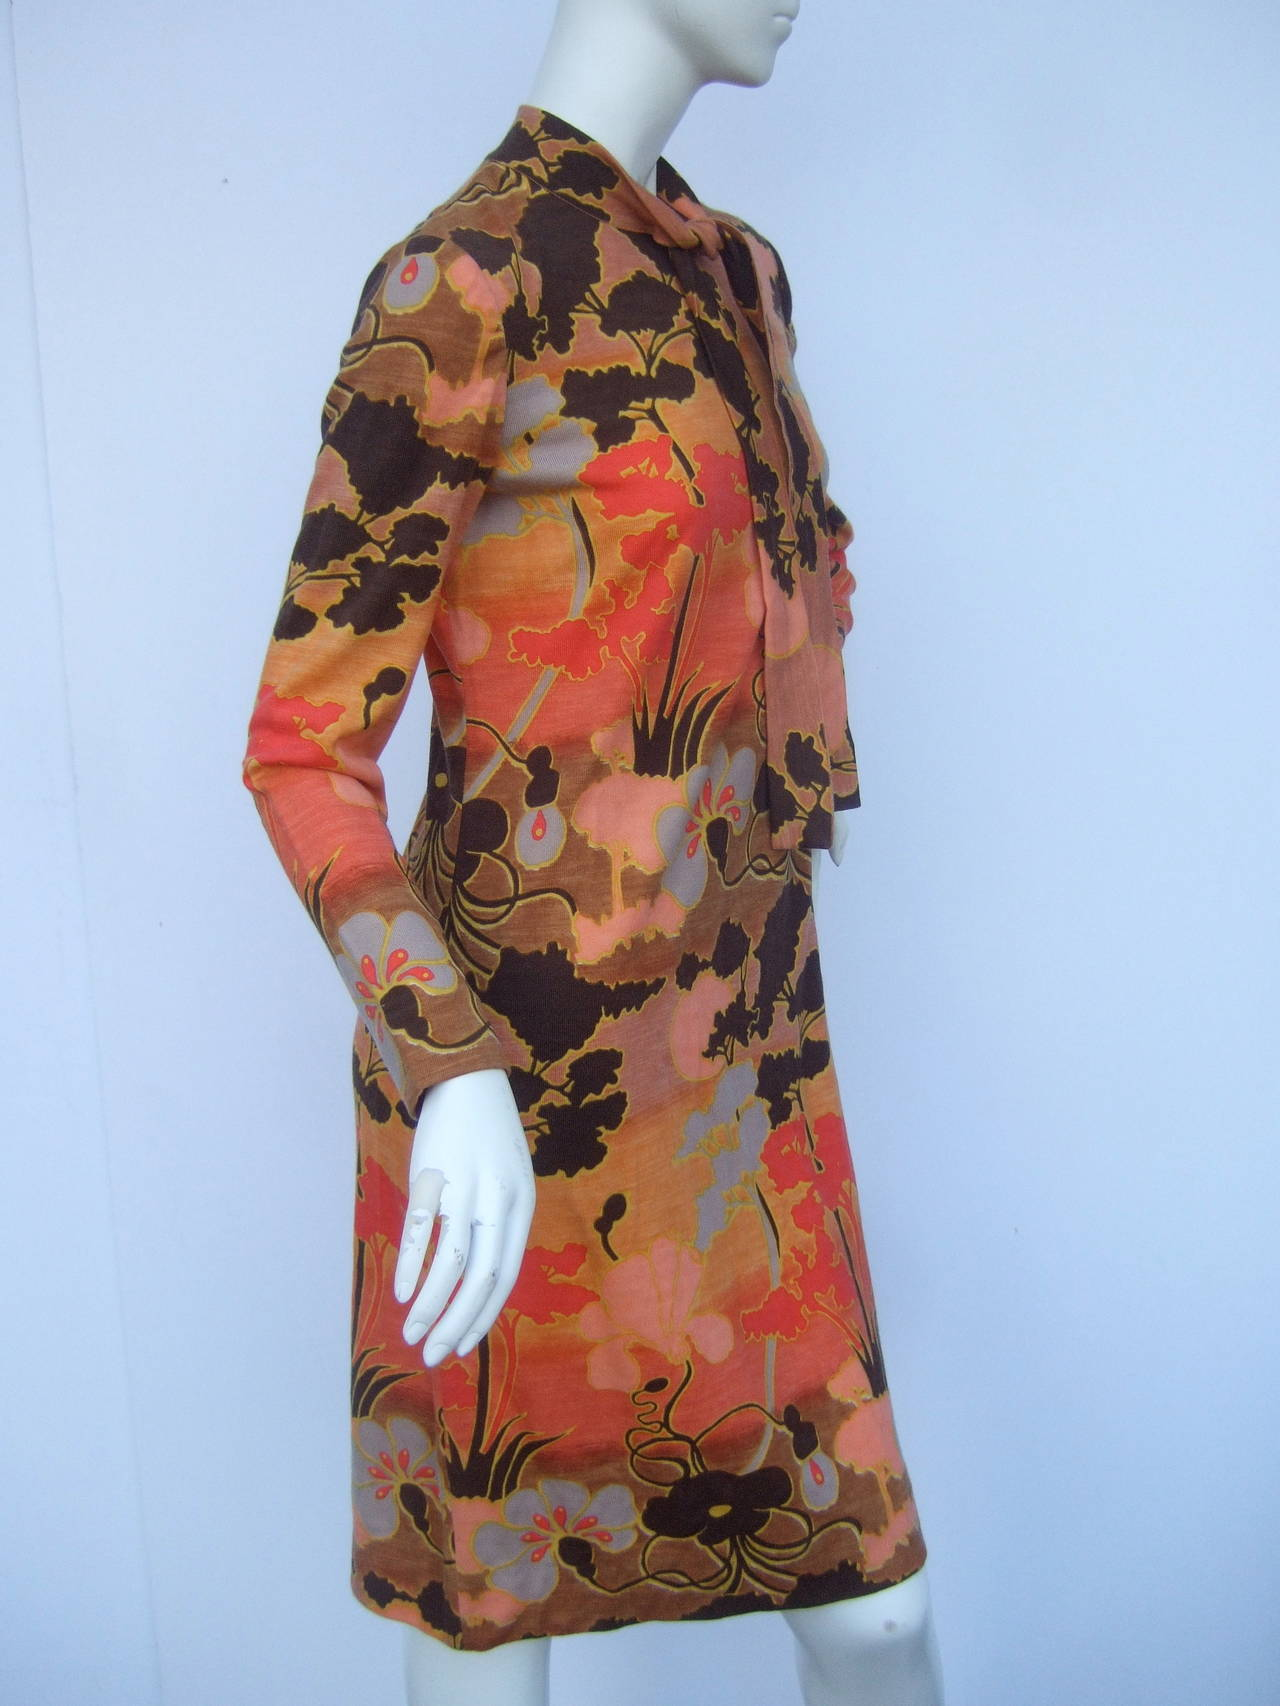 Italian Floral Print Merino Wool Knit Dress c 1970s In New never worn Condition For Sale In Santa Barbara, CA